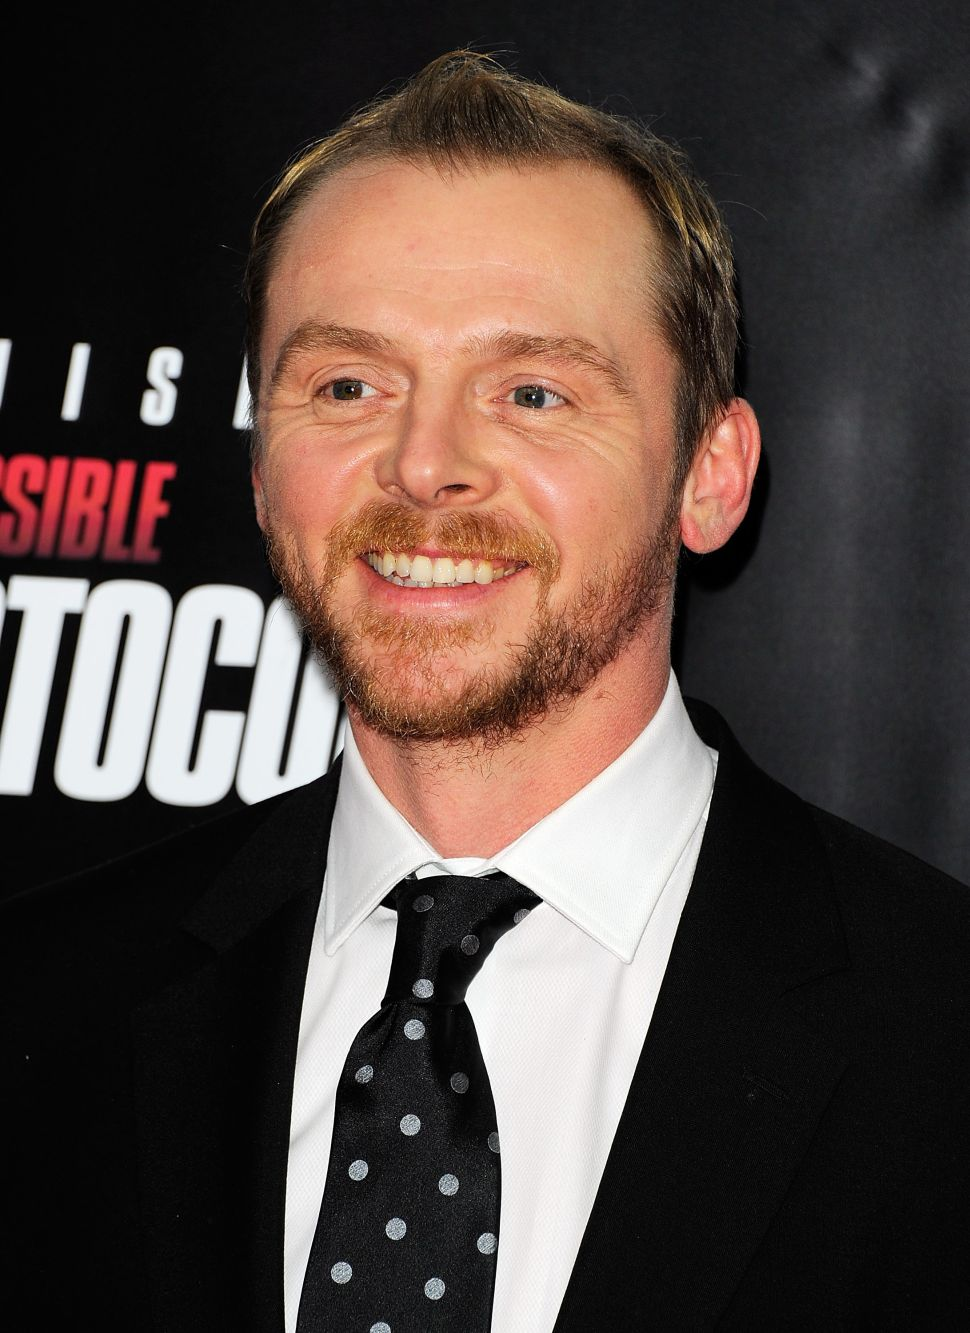 Simon Pegg on Binge-Watching, Robin Williams, and the Meaning of Happiness